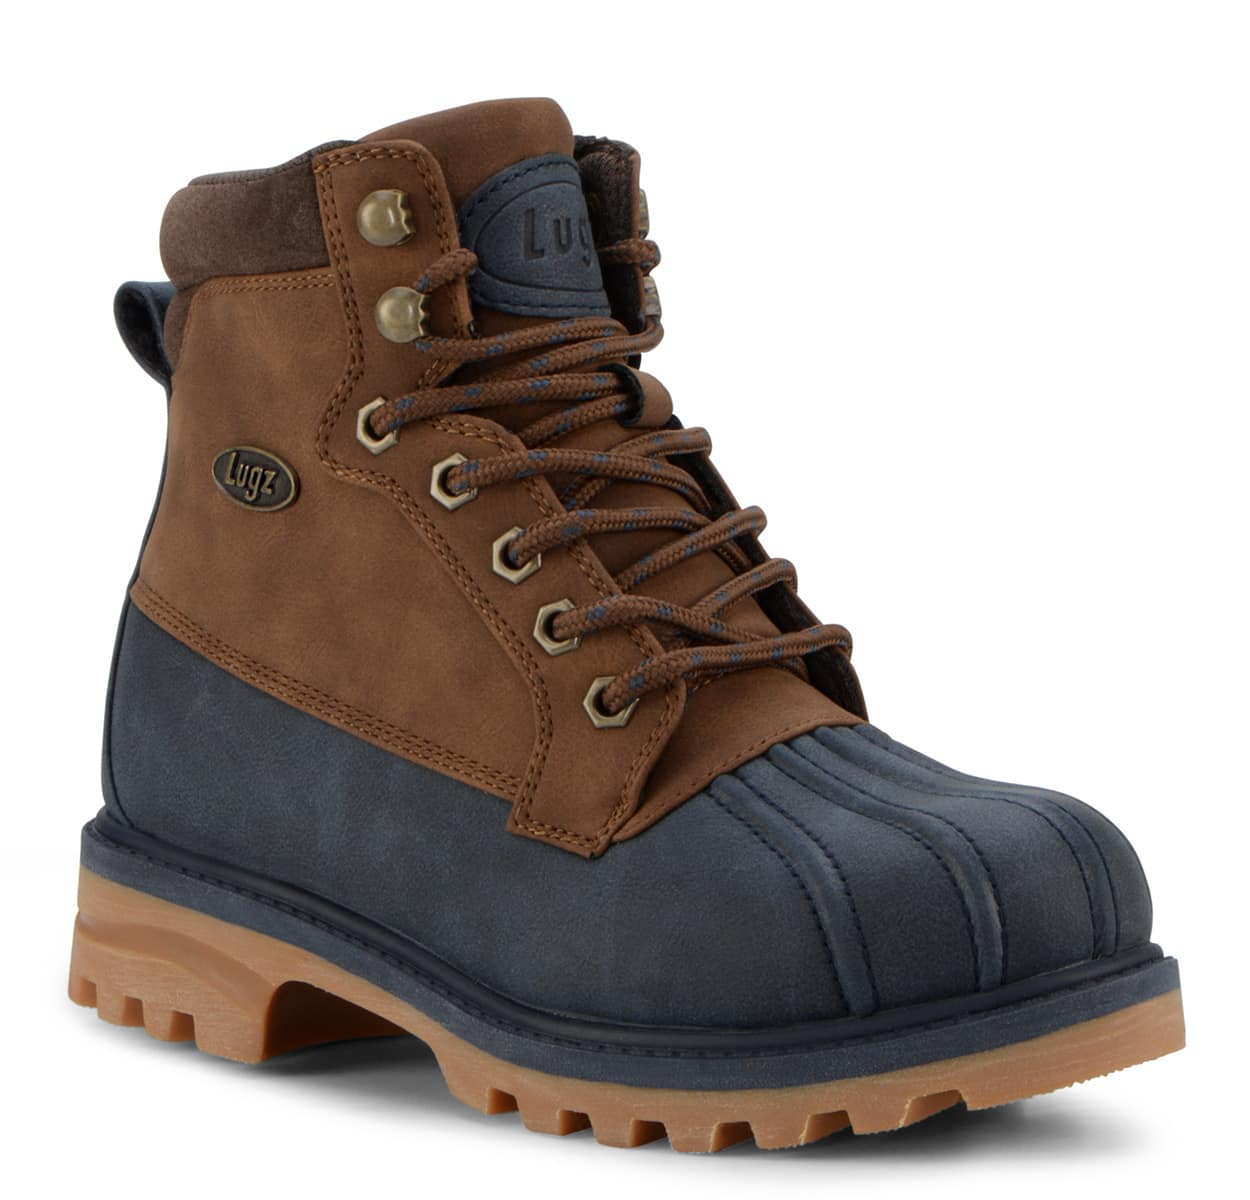 Women's Mallard 6-Inch Boot (Choose Your Color: NAVY/BROWN/DK BROWN/GUM, Choose Your Size: 10.0)